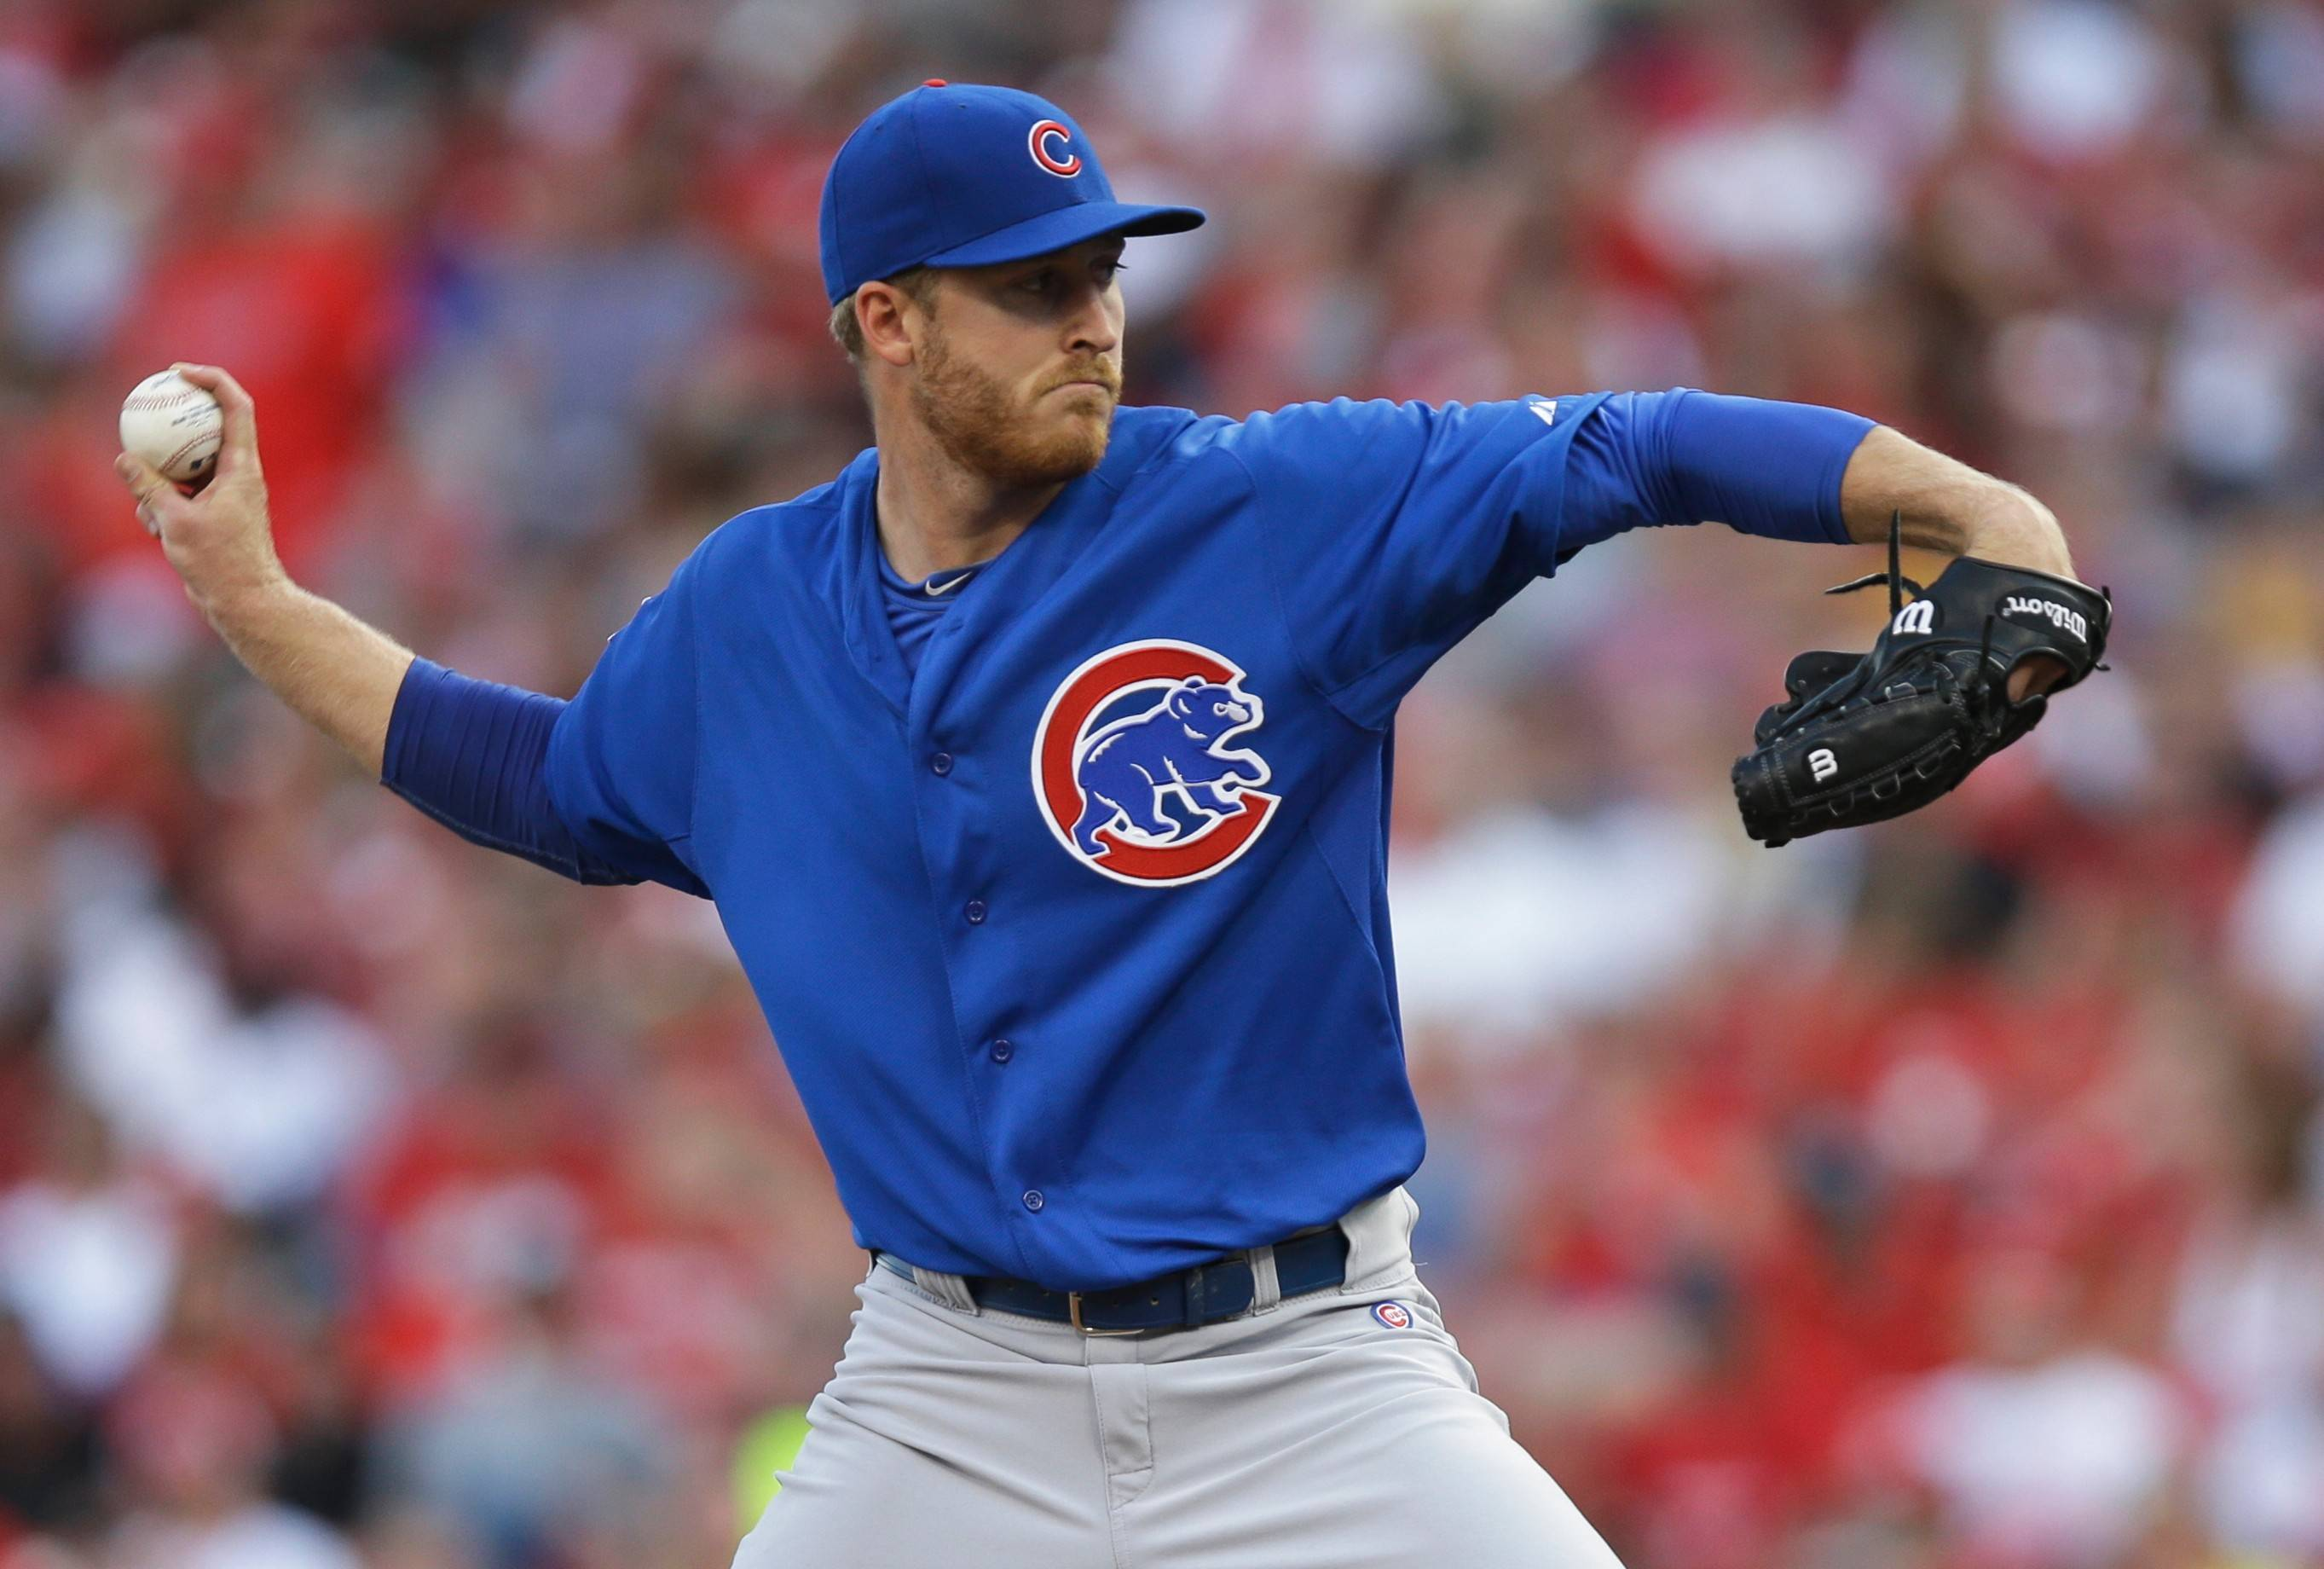 Cubs starting pitcher Dallas Beeler throws against the Cincinnati Reds in the third inning of a baseball game, Wednesday, July 9, 2014, in Cincinnati.